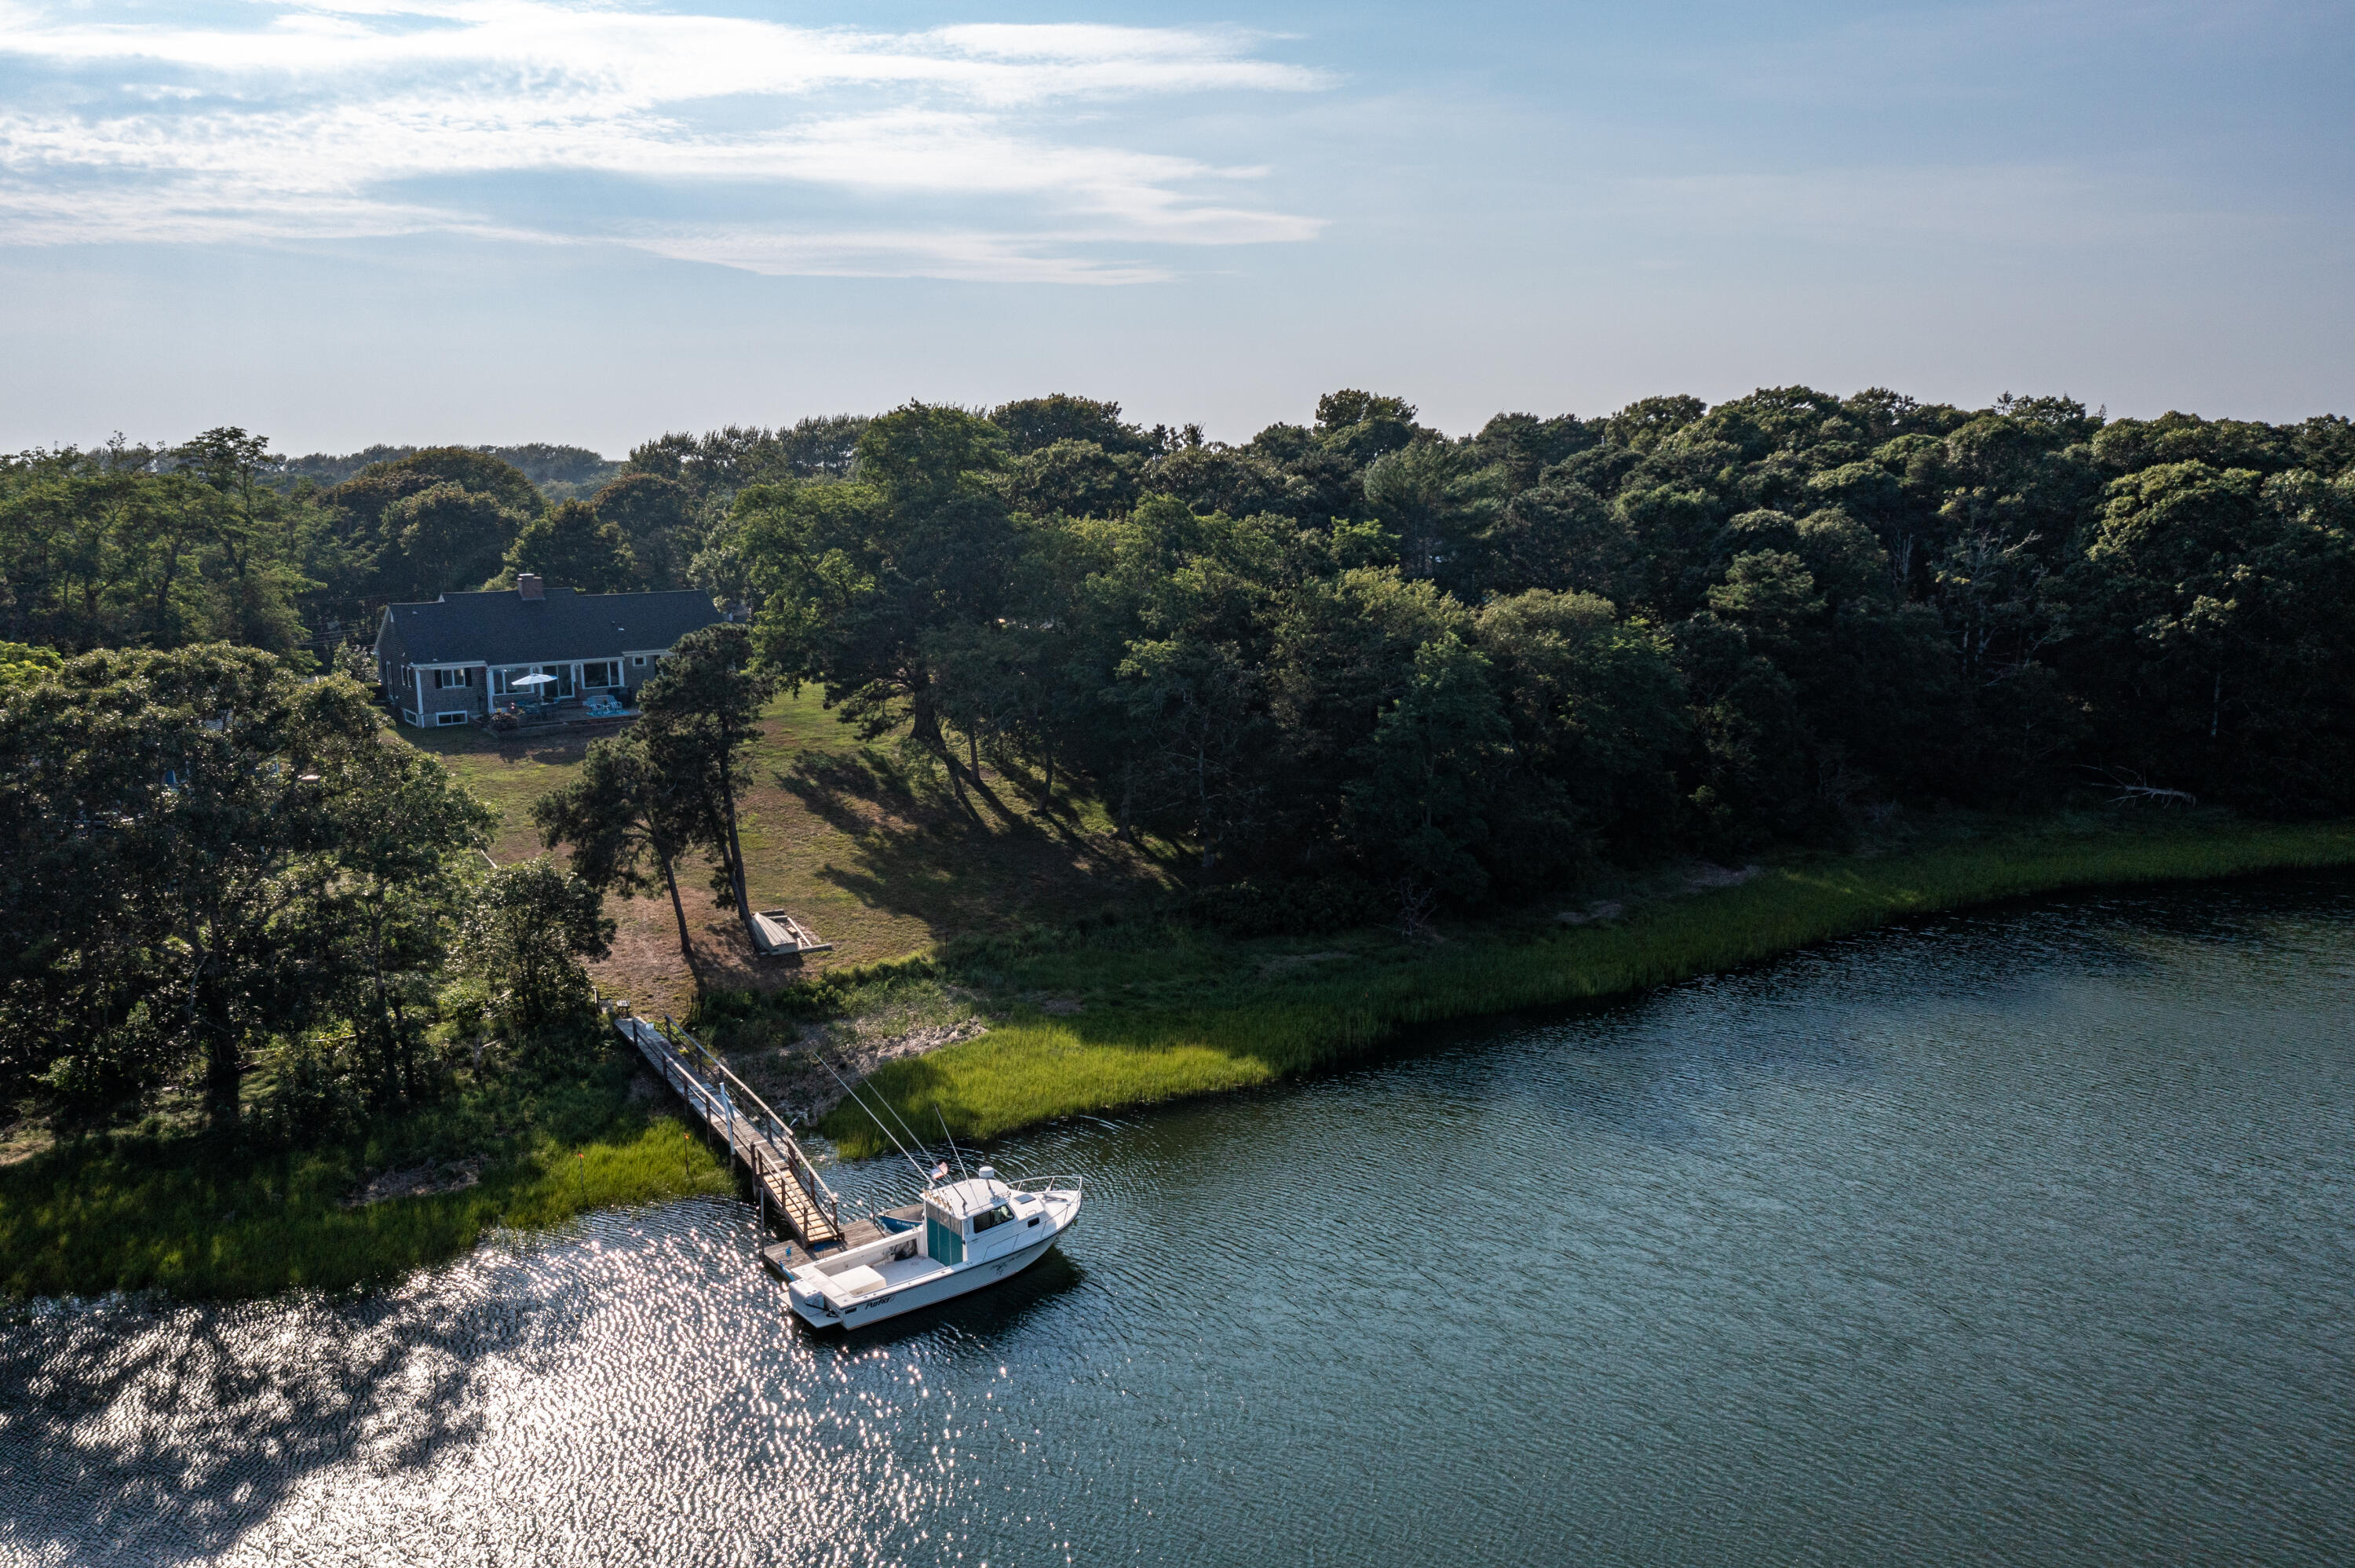 560 Orleans Road, North Chatham MA, 02650 sales details